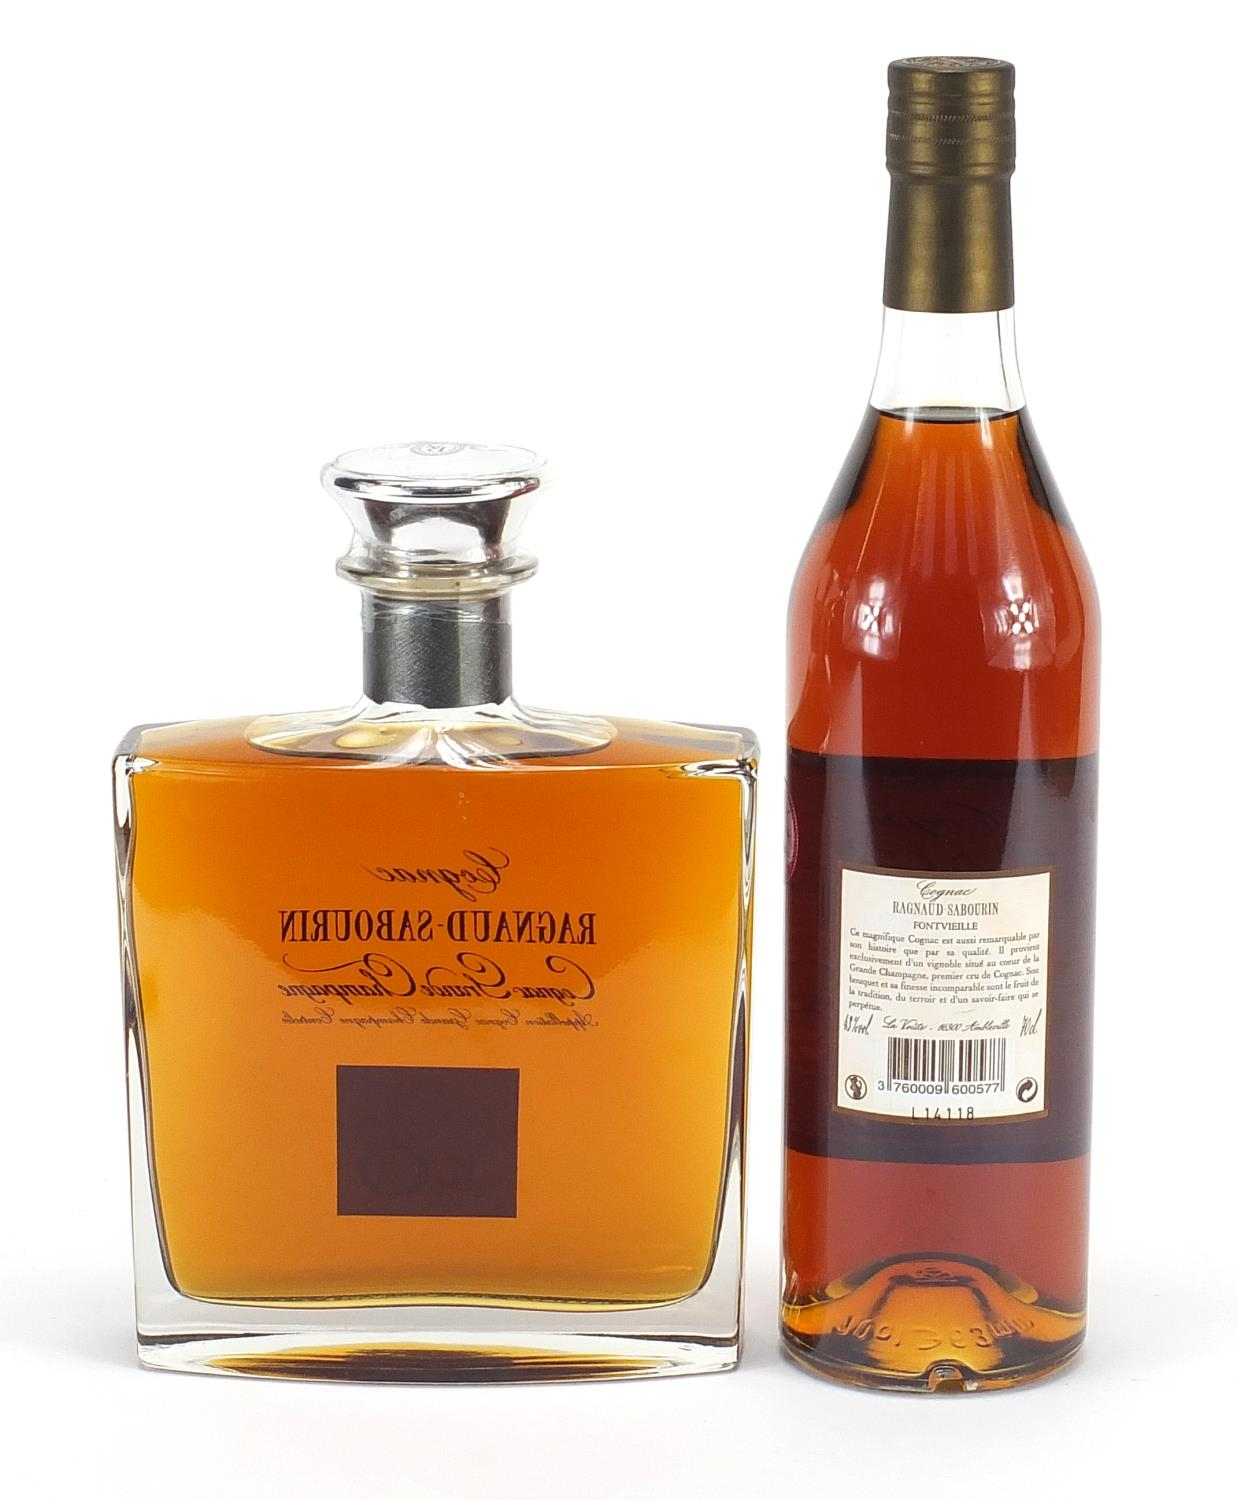 Two bottles of Ragnaud-Sabourin Cognac Grande Champagne comprising XO no 25 and no 35 : For - Image 2 of 2